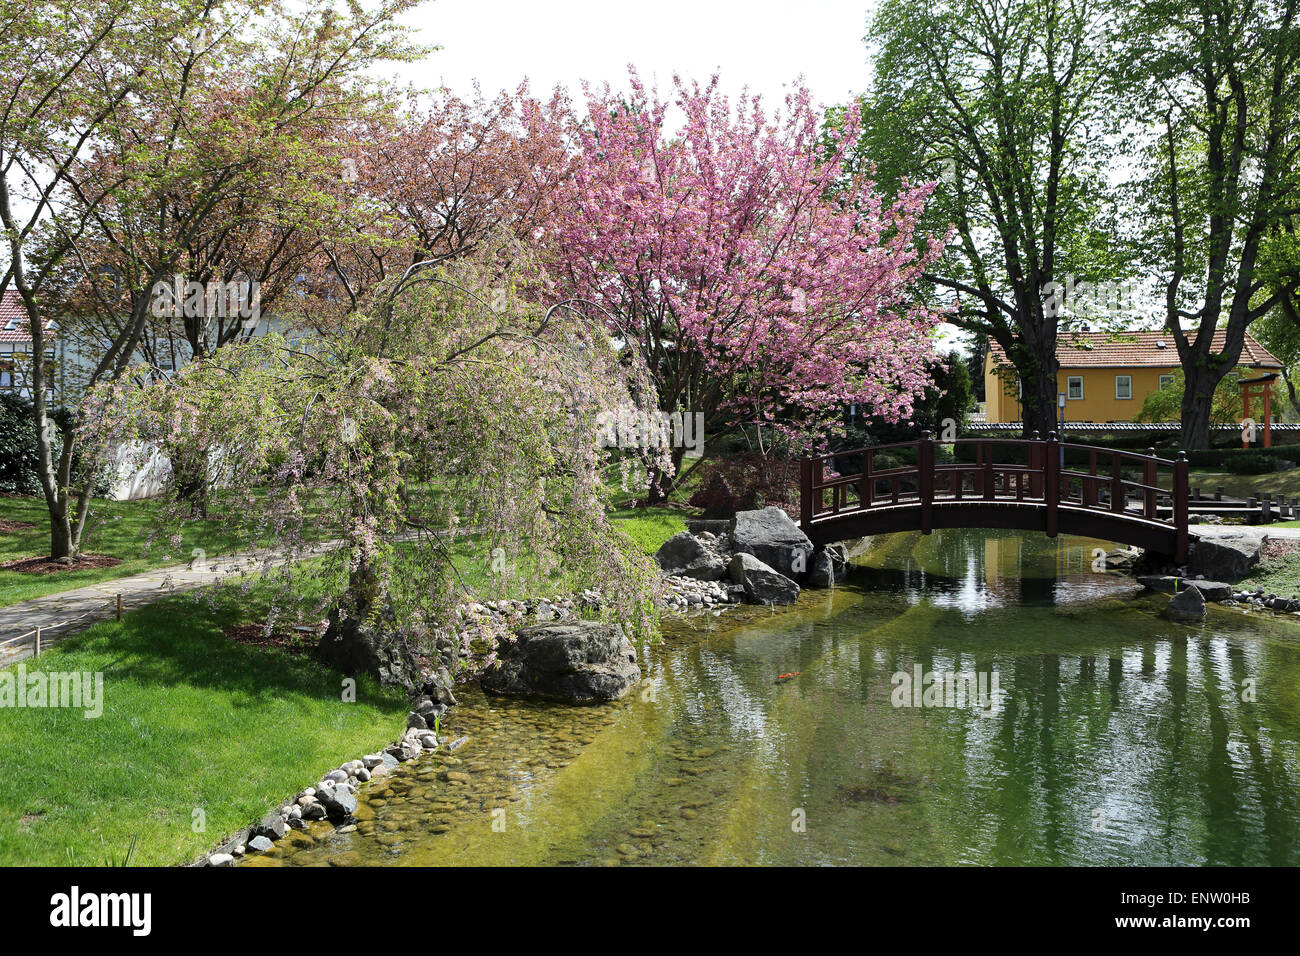 Cherry trees blossom by an arched brdige in the Japanese Garden (Japanischer Garten) in Bad Langensalza, Germany. - Stock Image